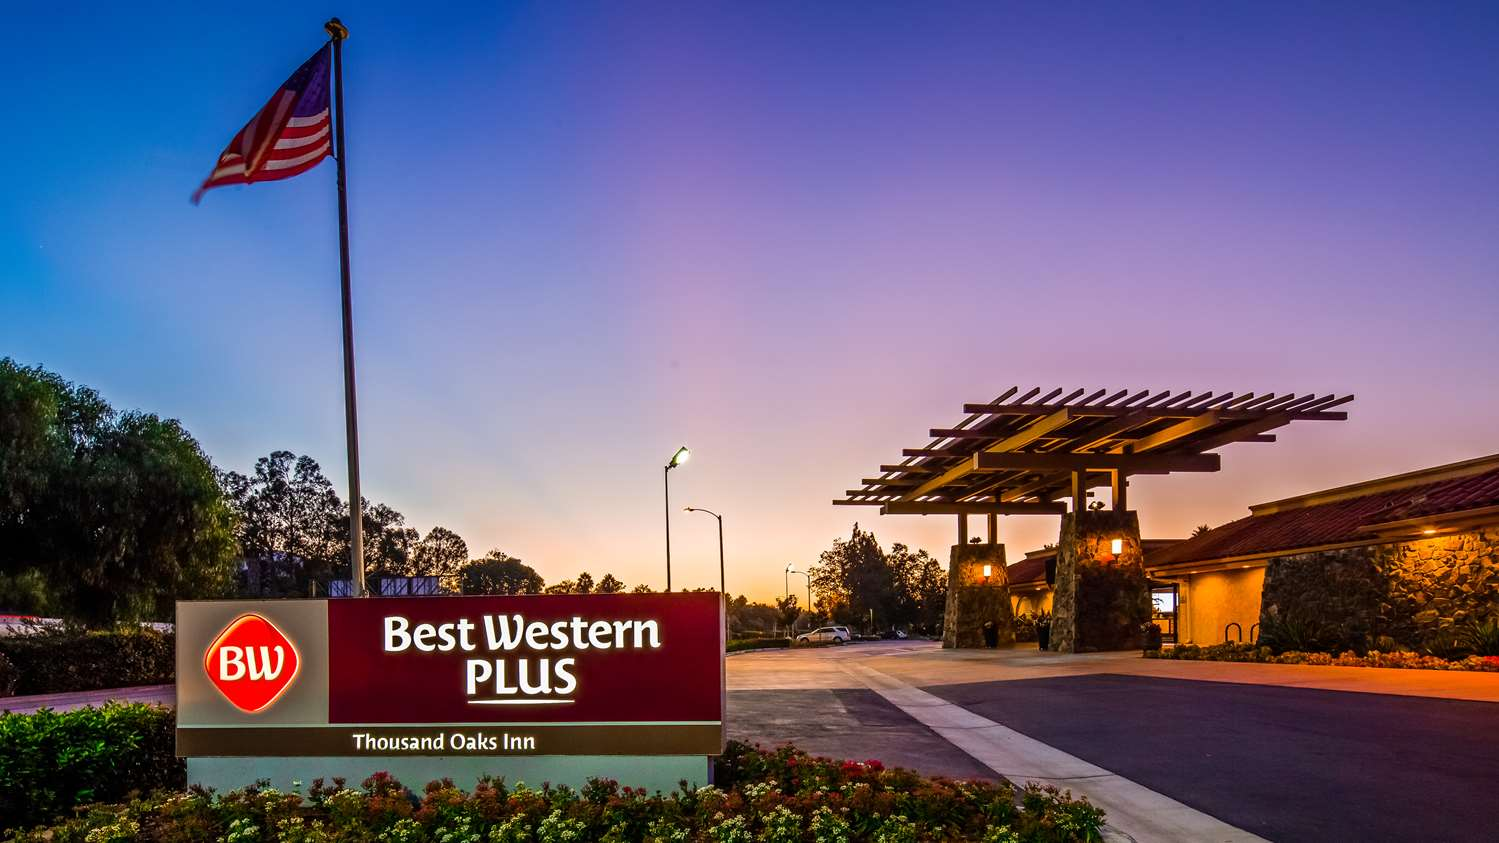 Thousand Oaks Ca Hotel Best Western